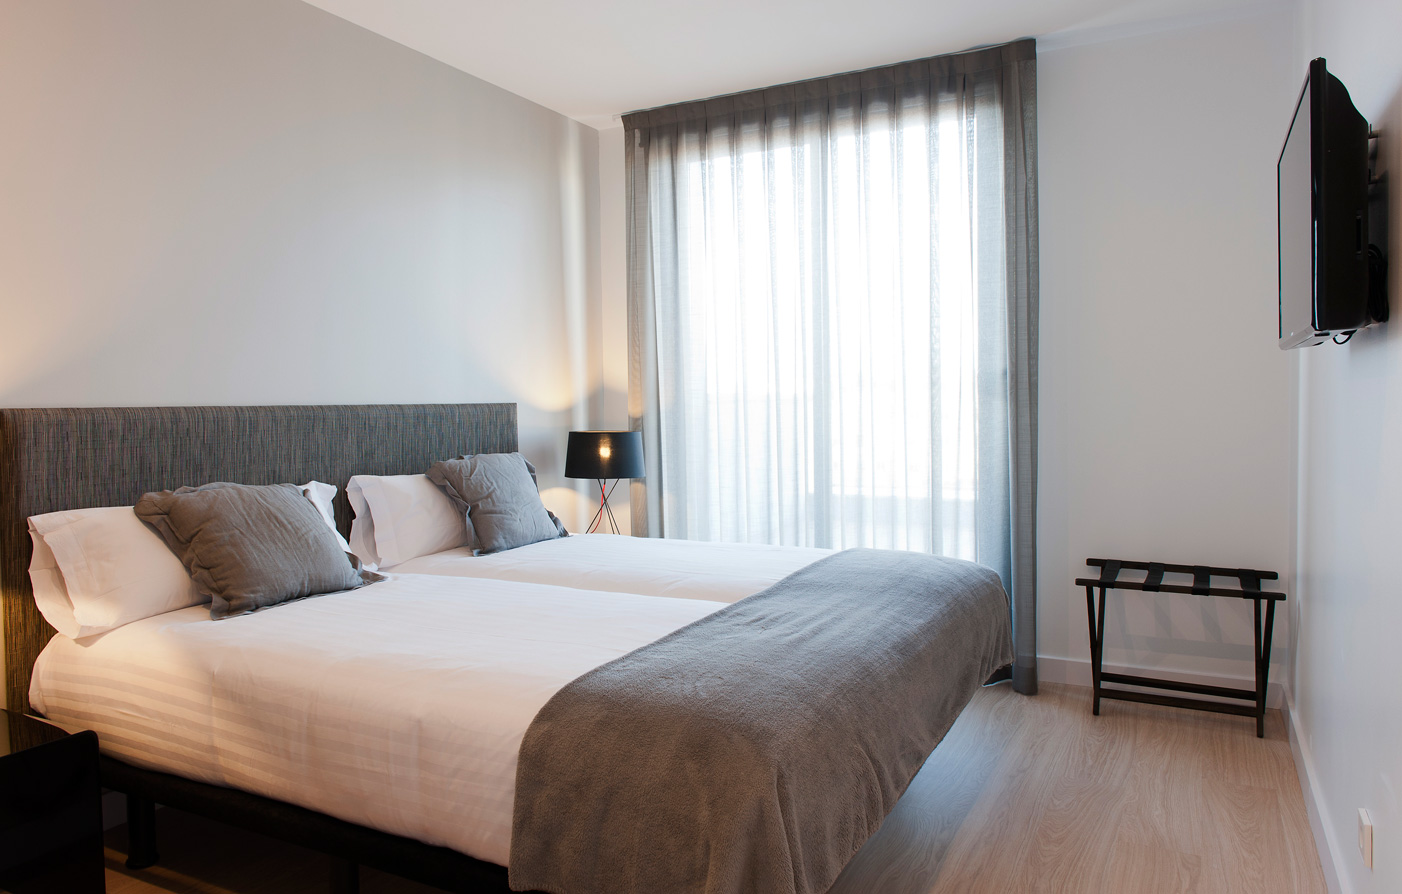 Apartment Rental in Barcelona | MH Apartments Barcelona ...